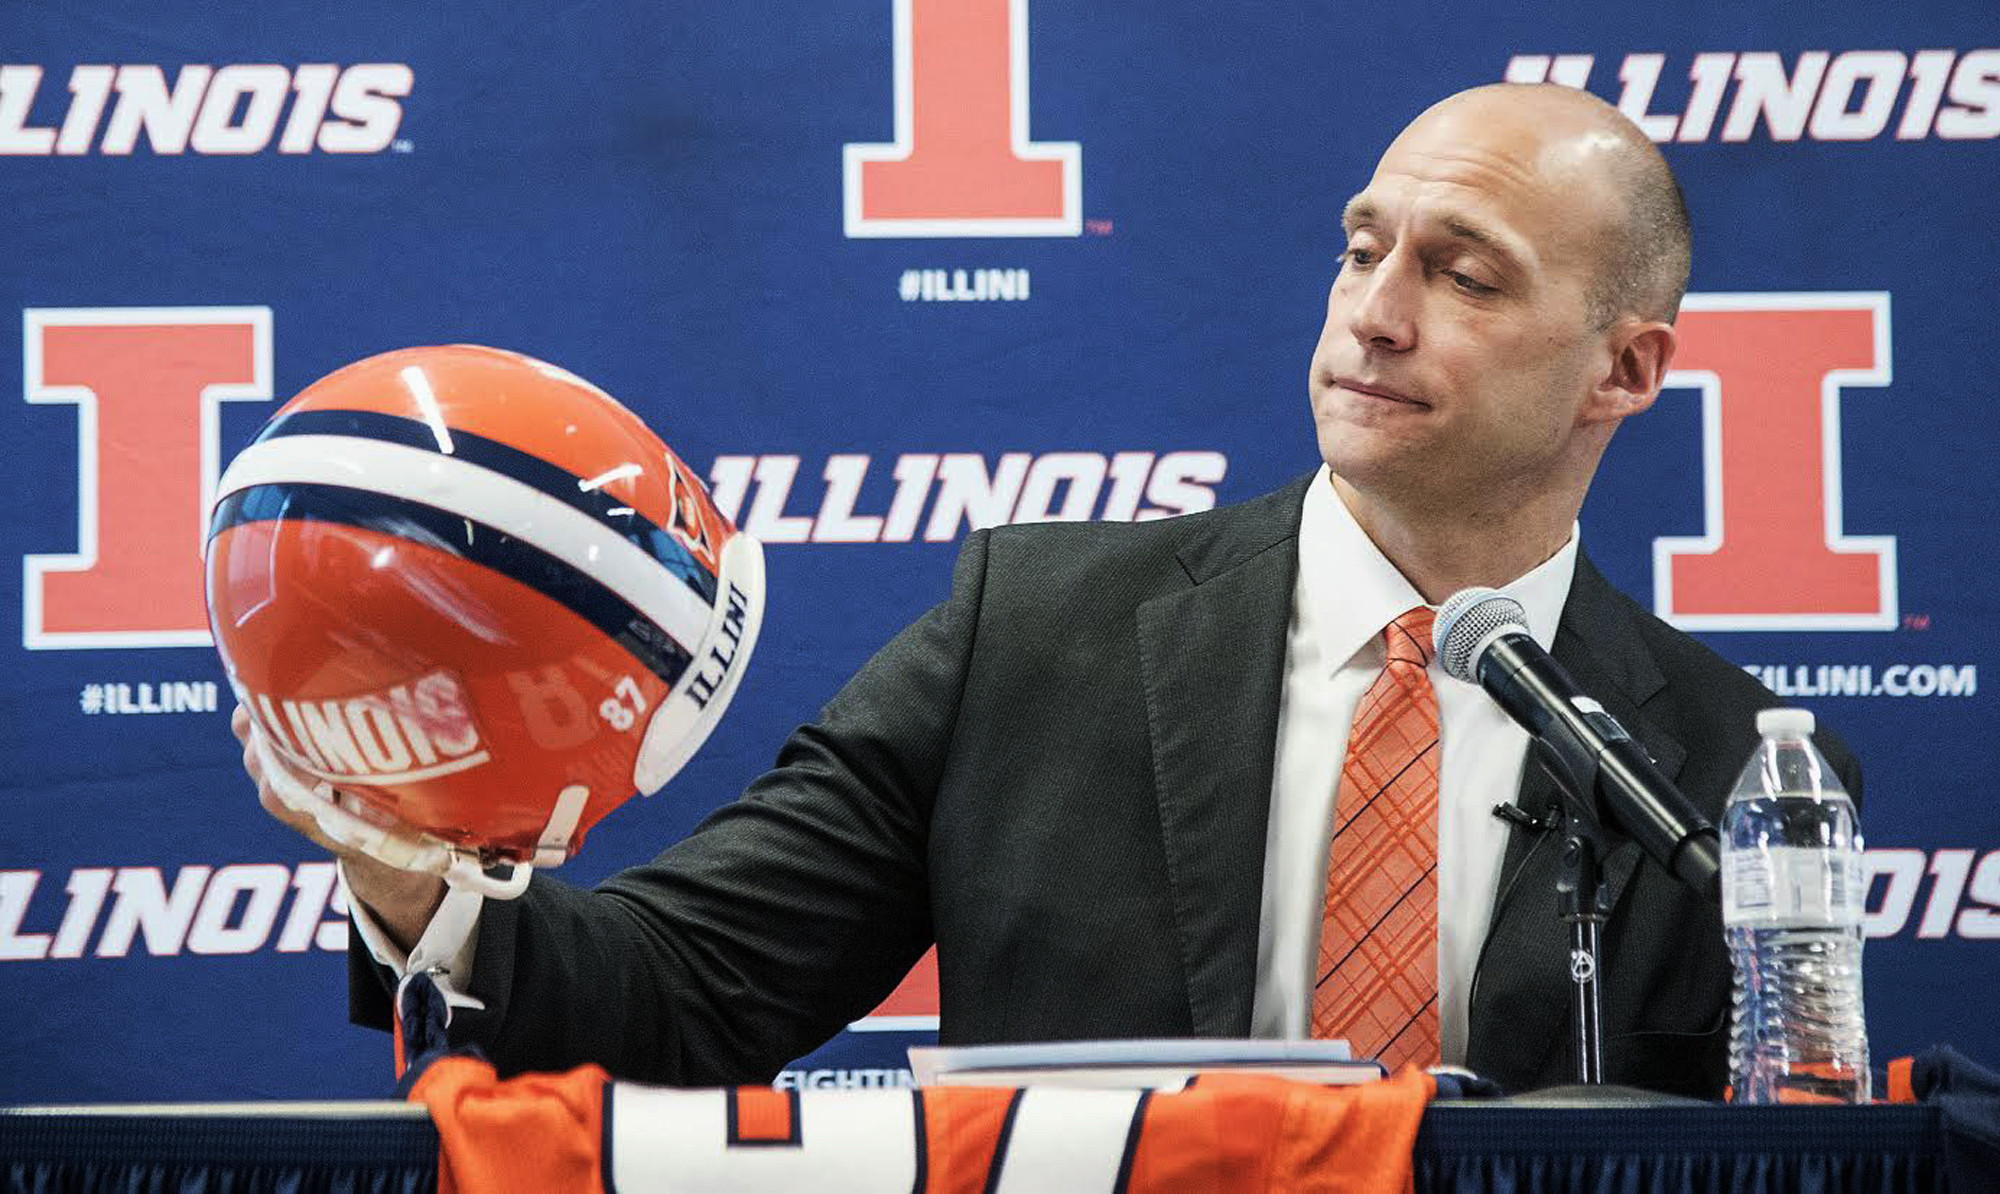 illinois new athletic director we re coming home chicago tribune